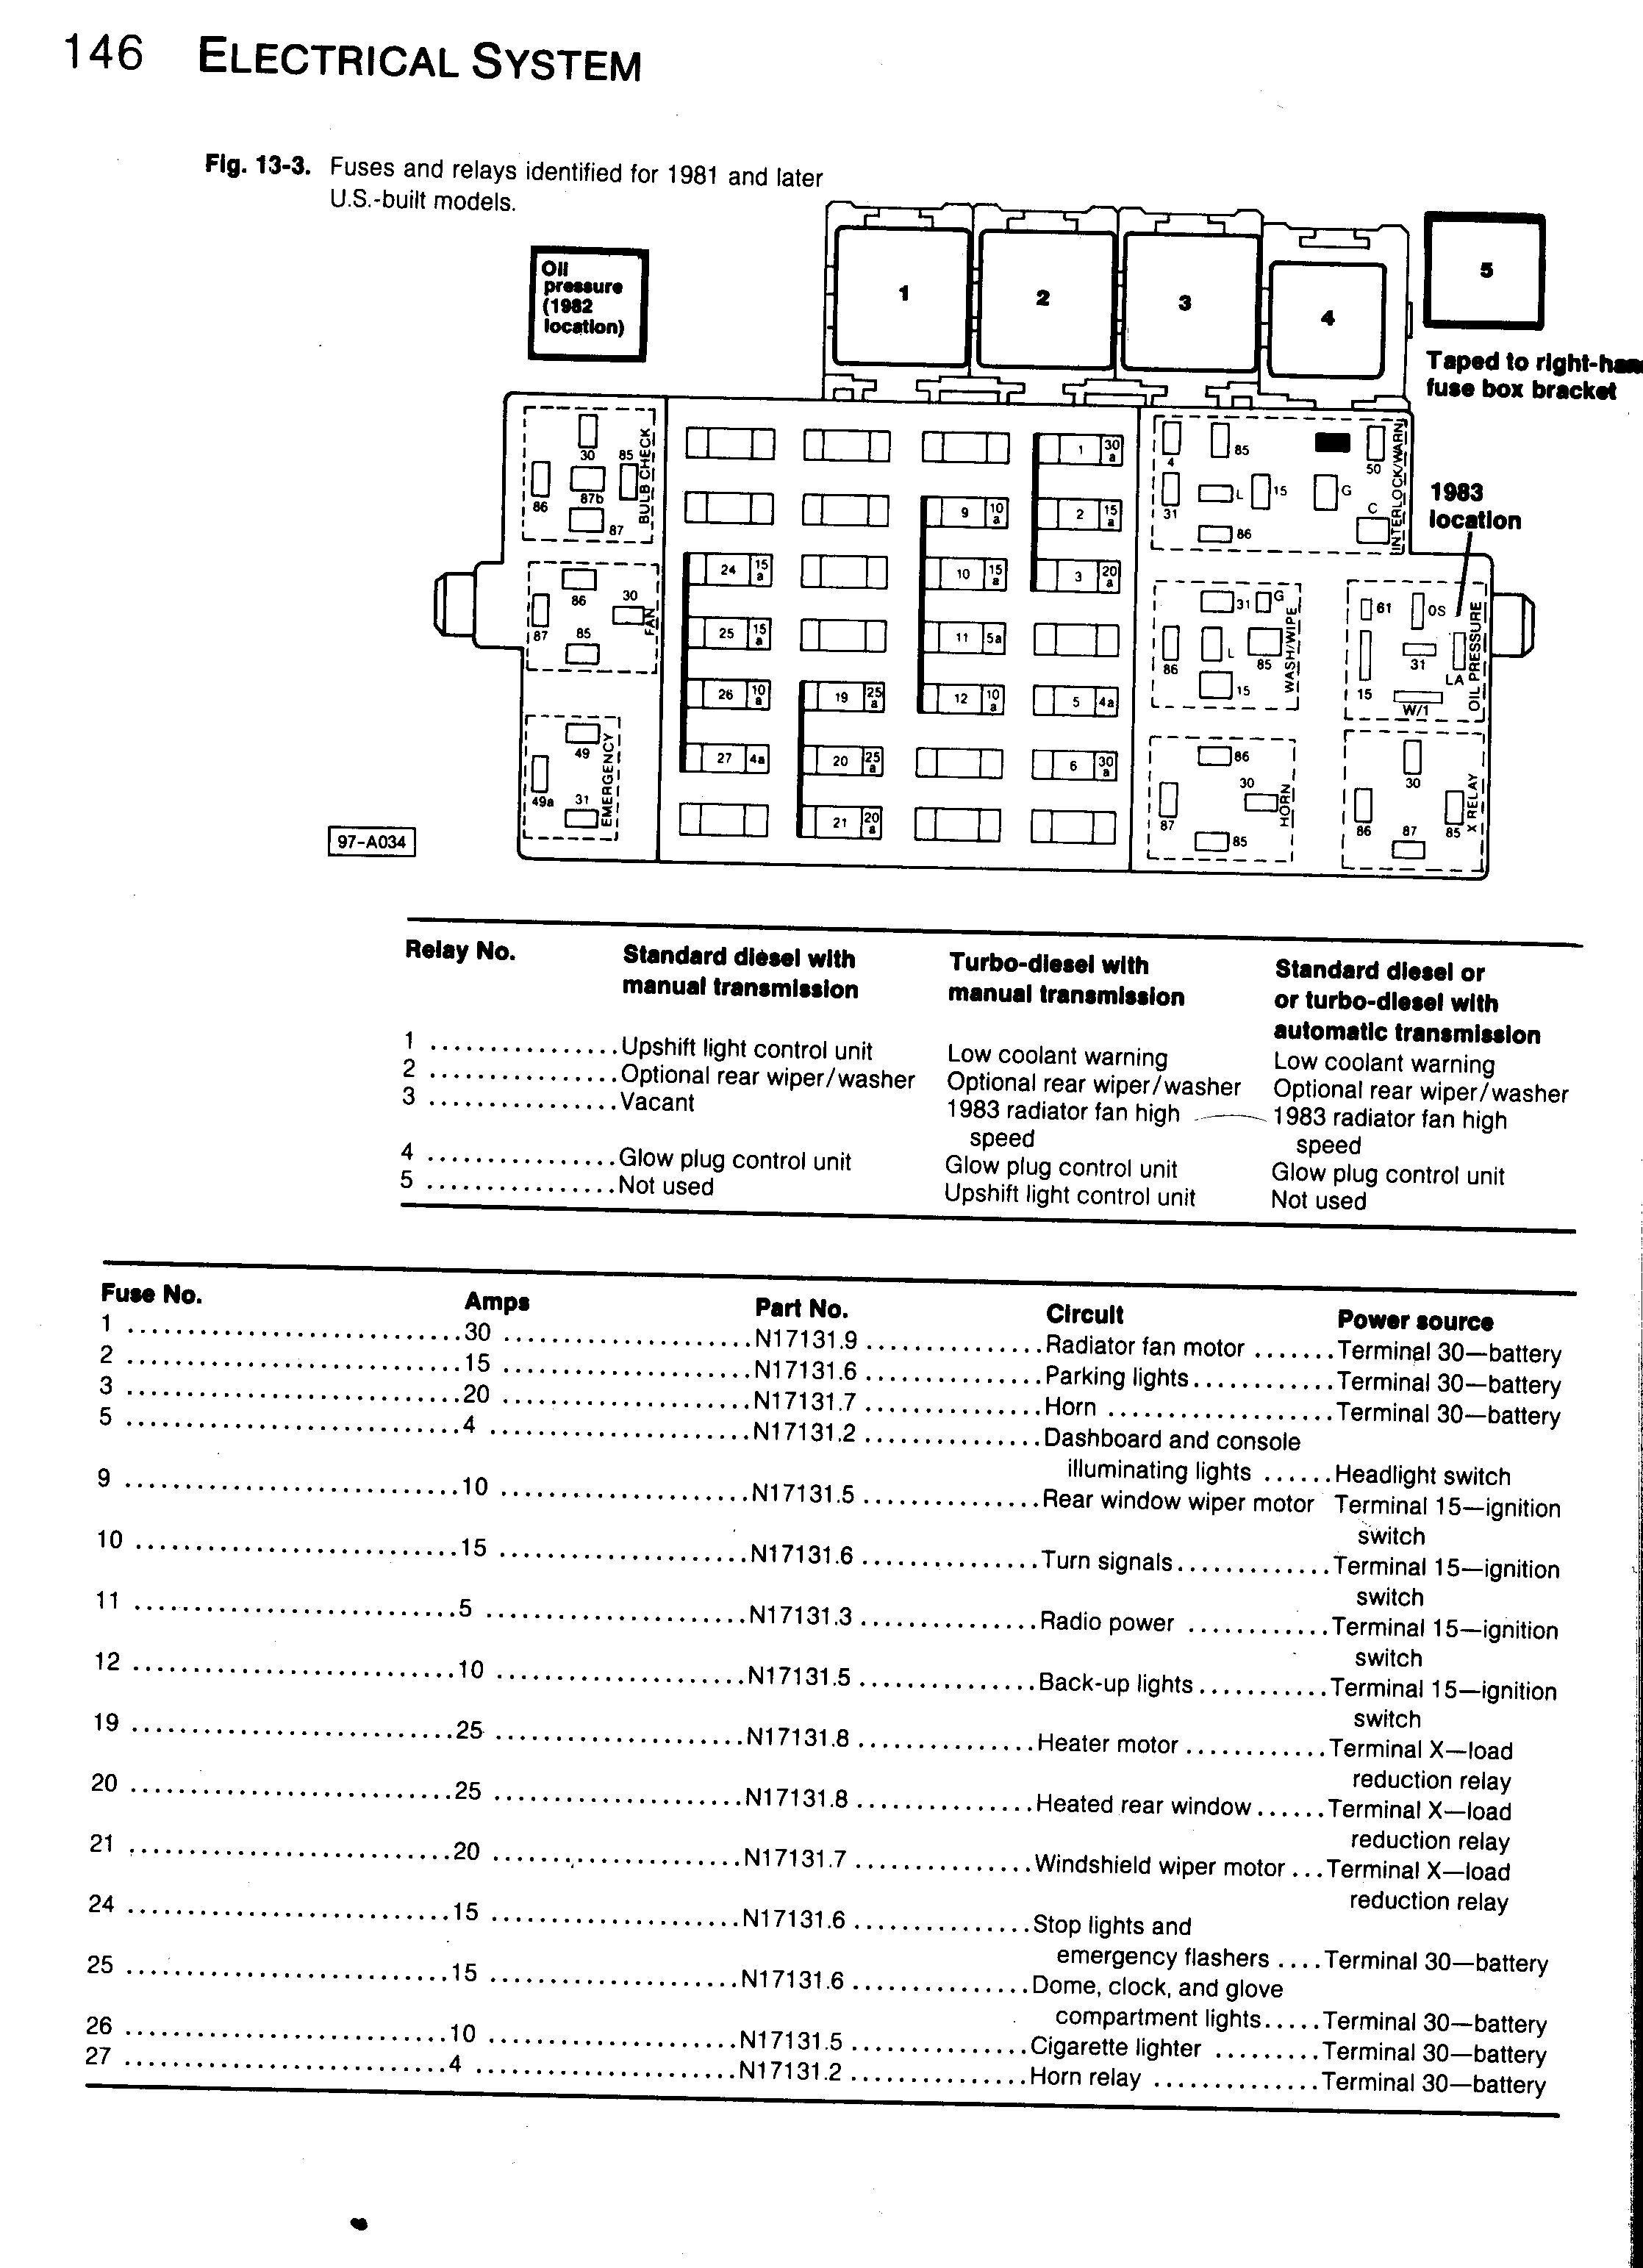 2005 chevy van fuse box diagram wiring library rh 1 top10 geschlossene fonds de